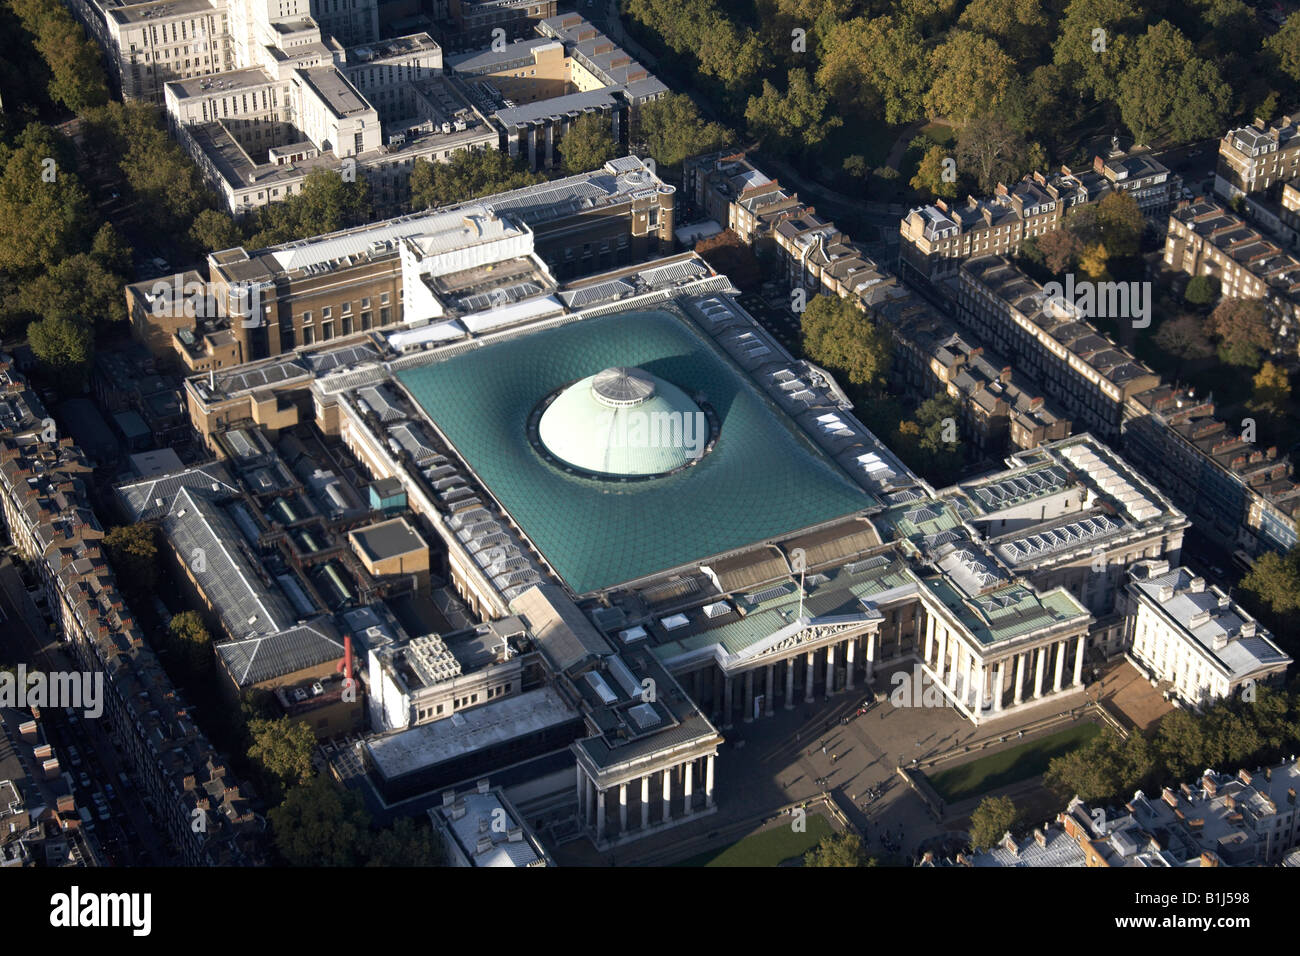 Aerial view north west of The British Museum Bloomsbury London WC1 England UK - Stock Image